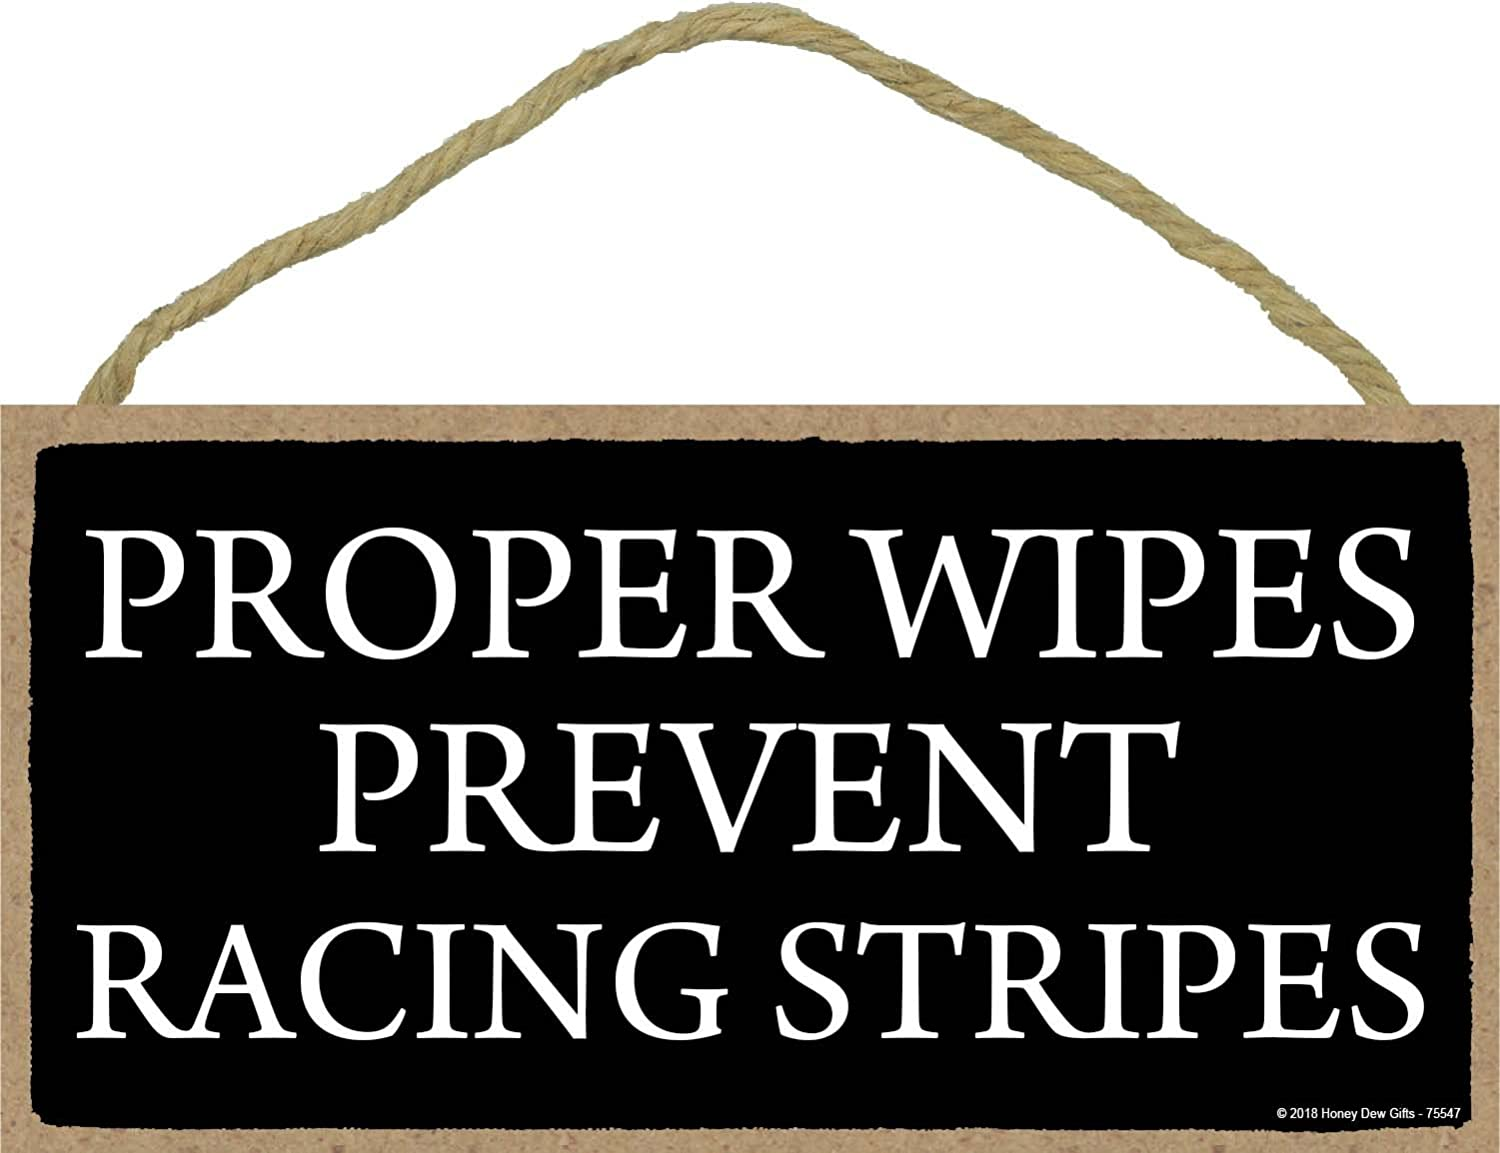 Honey Dew Gifts Proper Wipes Prevent Racing Stripes - 5 x 10 inch Hanging Funny Bathroom Signs, Wall Art, Decorative Wood Sign, Bathroom Decor